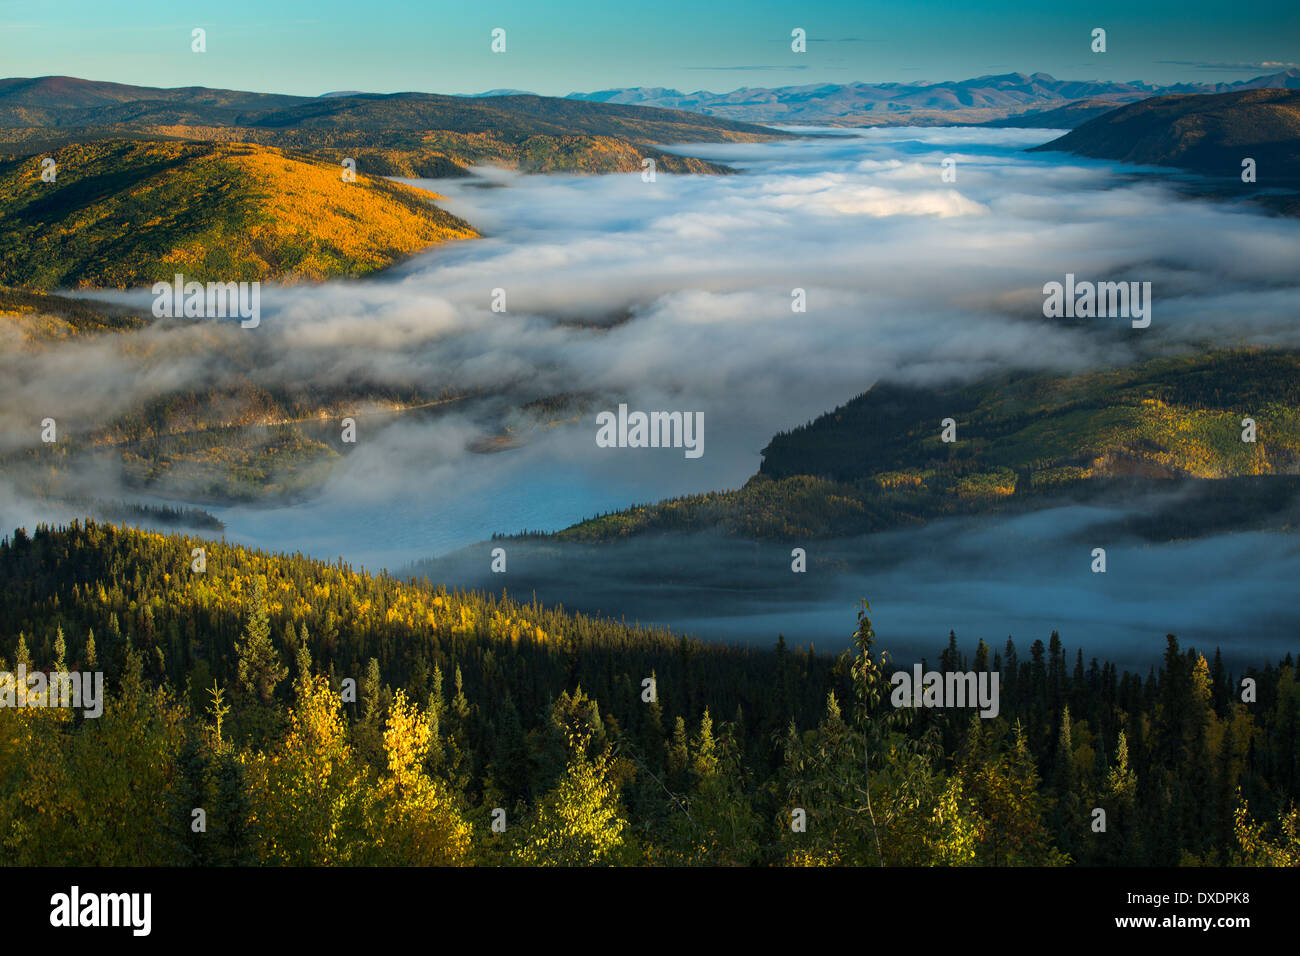 Mist in the valley of the Yukon River at dawn, downstream of Dawson City from Dome Hill, Yukon Territories, Canada - Stock Image